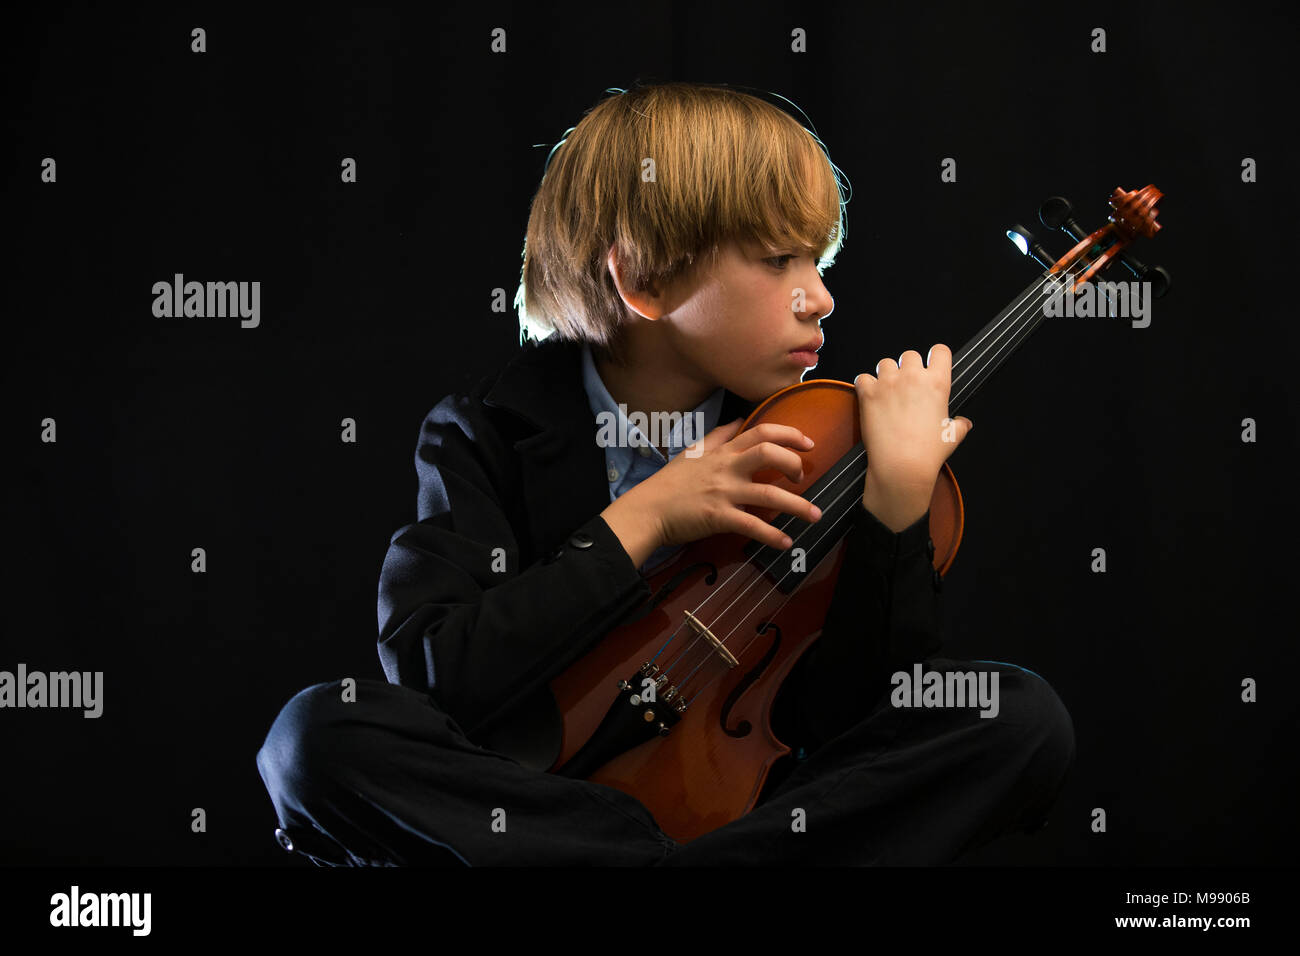 child playing violin, black background, sentimental theme, sad, pensive, concentrated - Stock Image